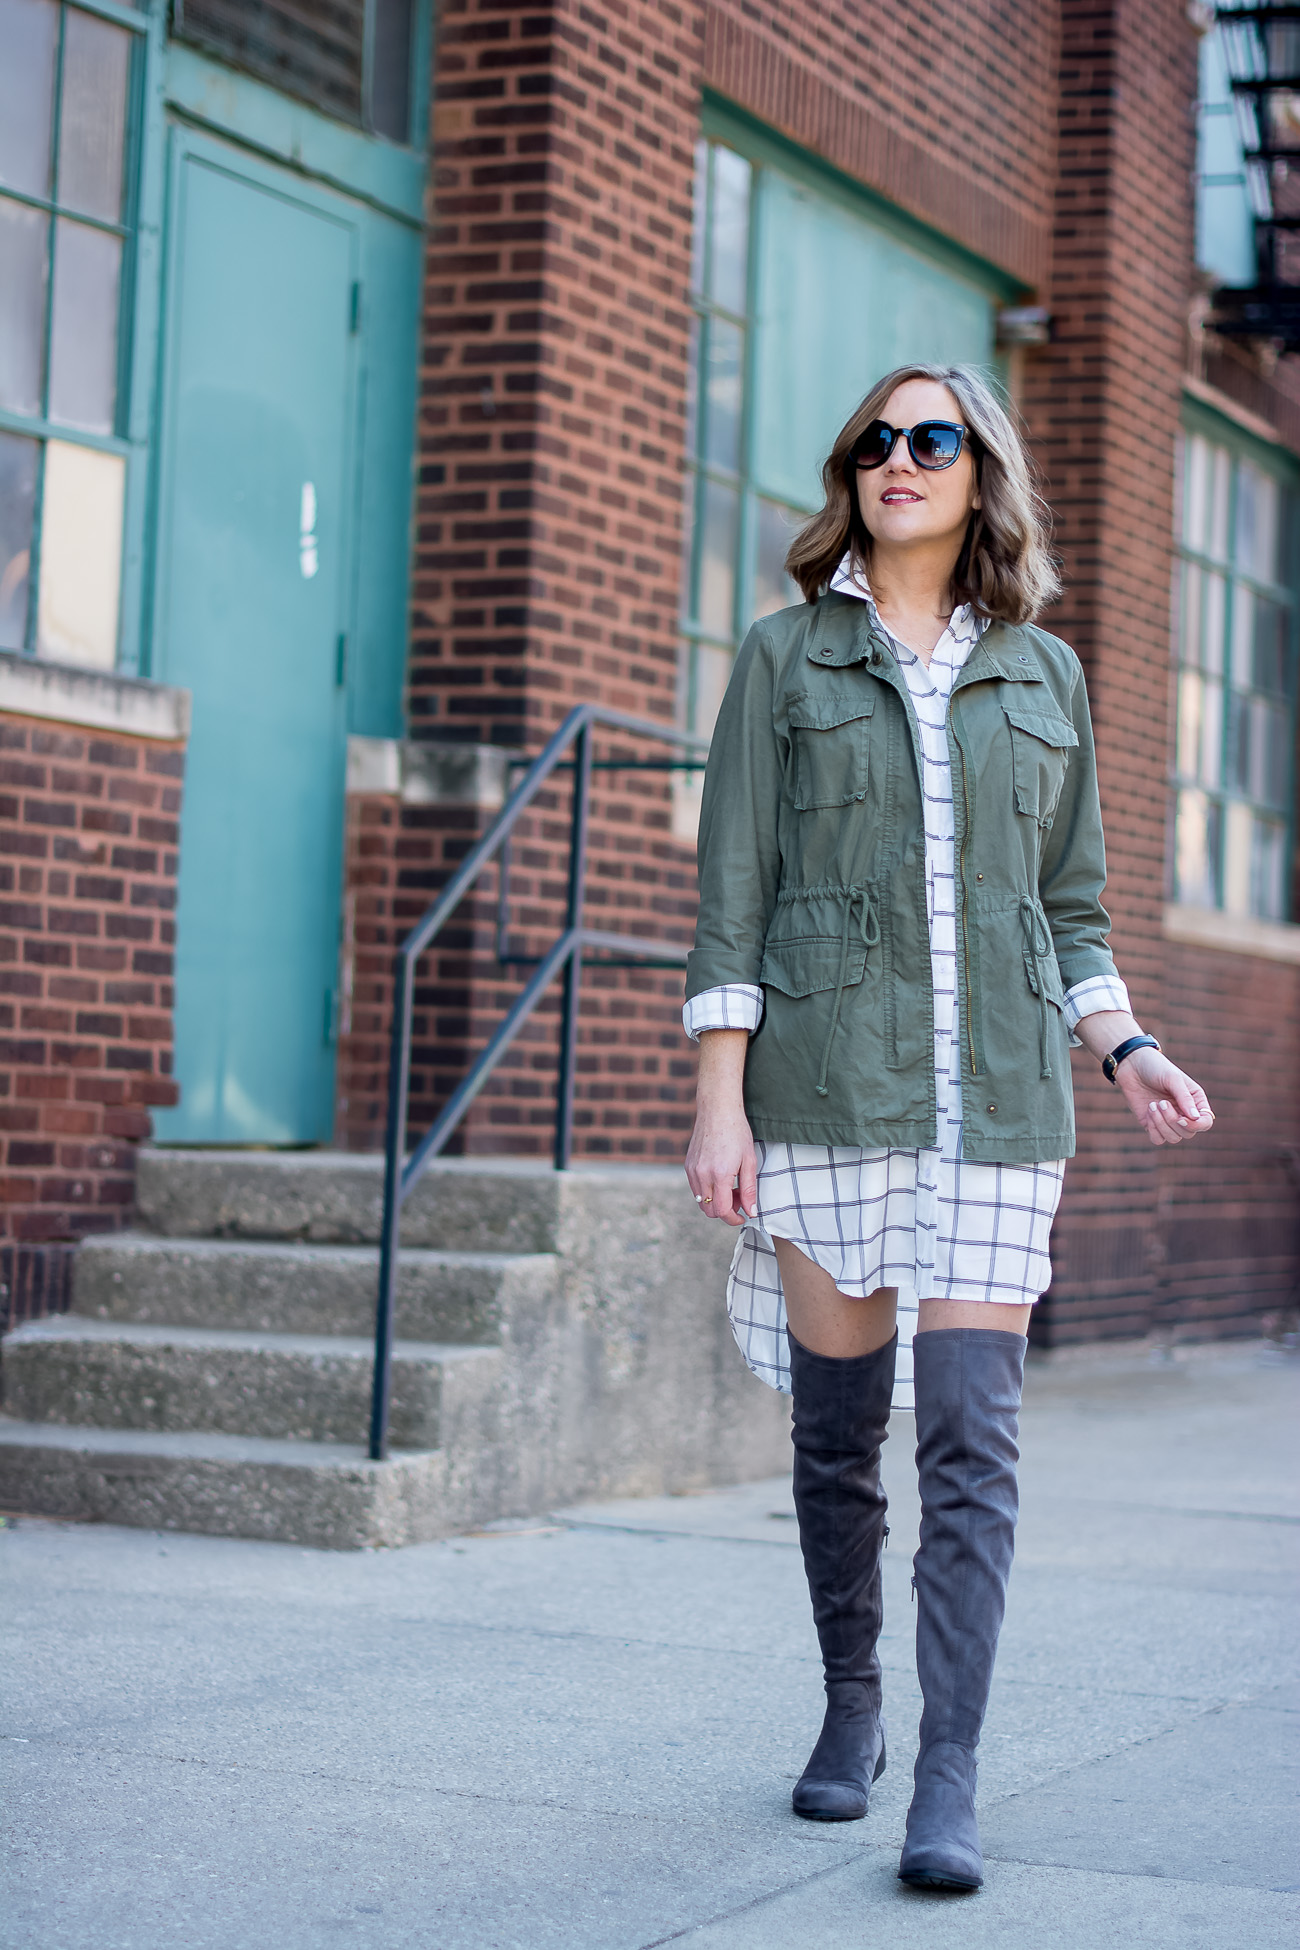 cargo-jacket-black-and-white-grid-print-shirtdress-gray-over-the-knee-boots-delicate-jewelry